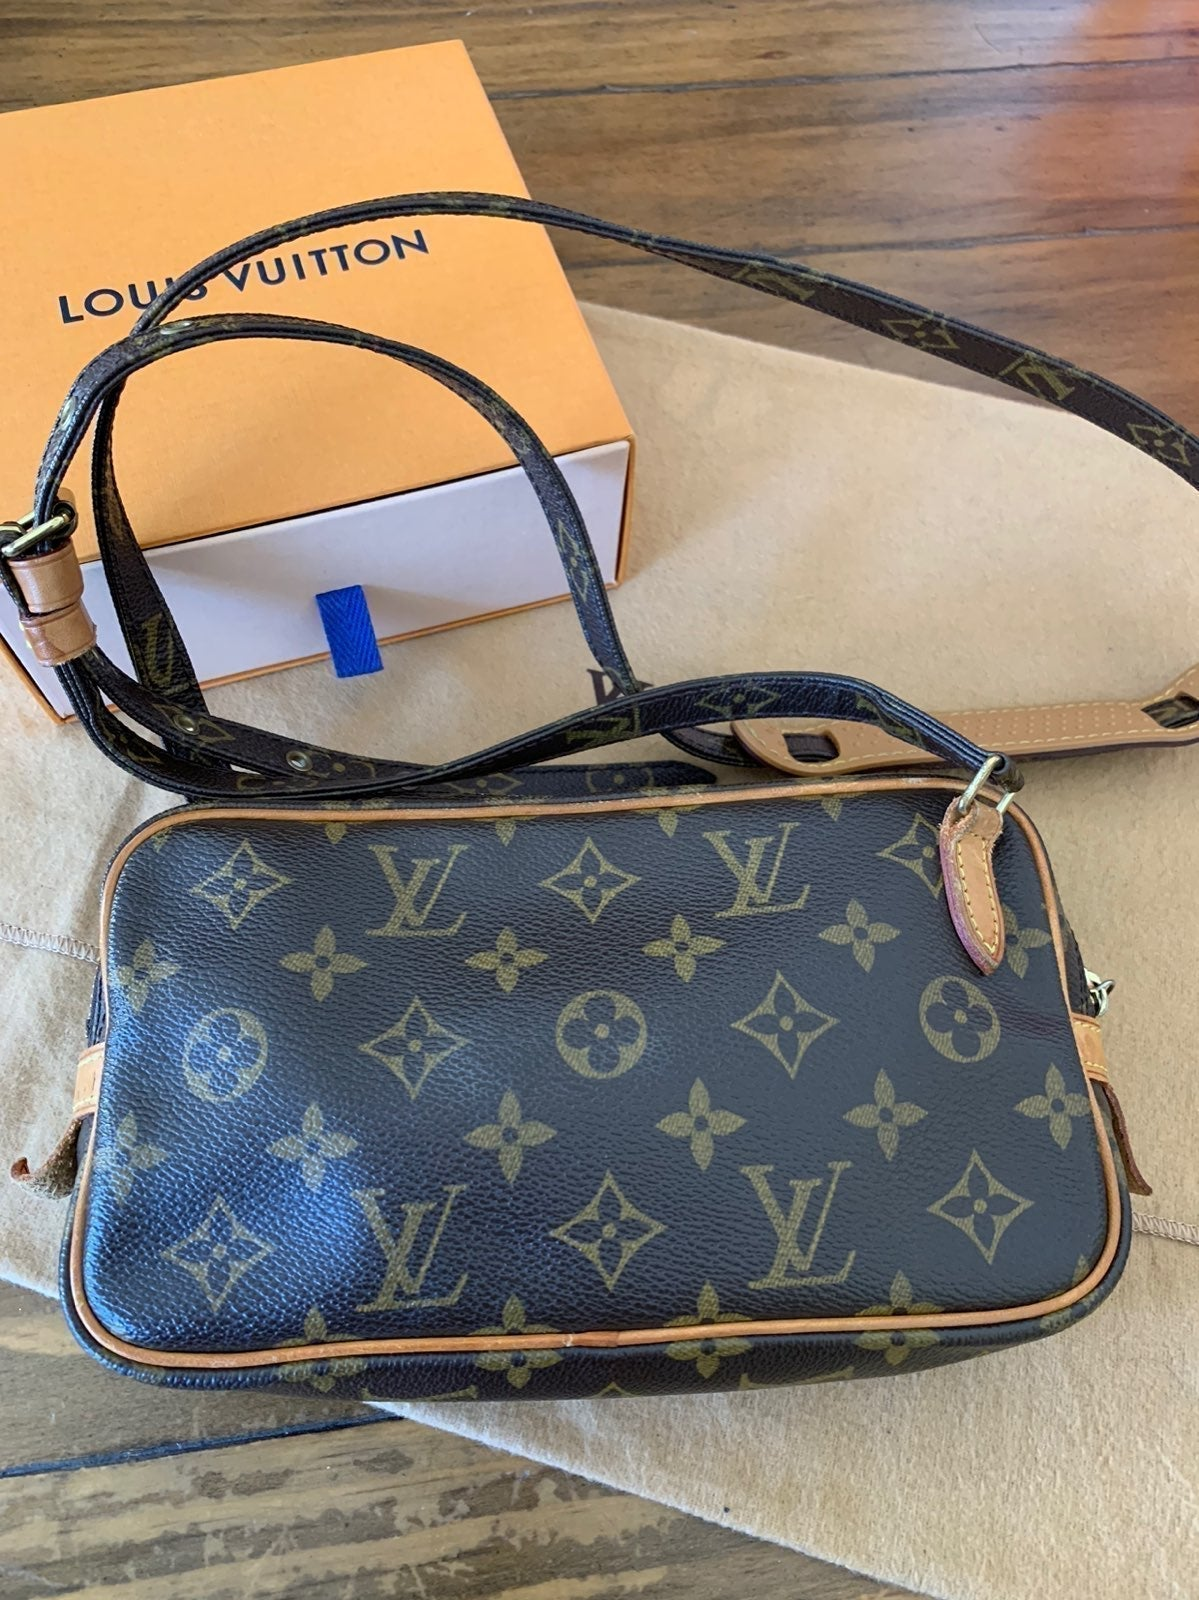 4TH OF JULY SPECIAL***Louis Vuitton Poch